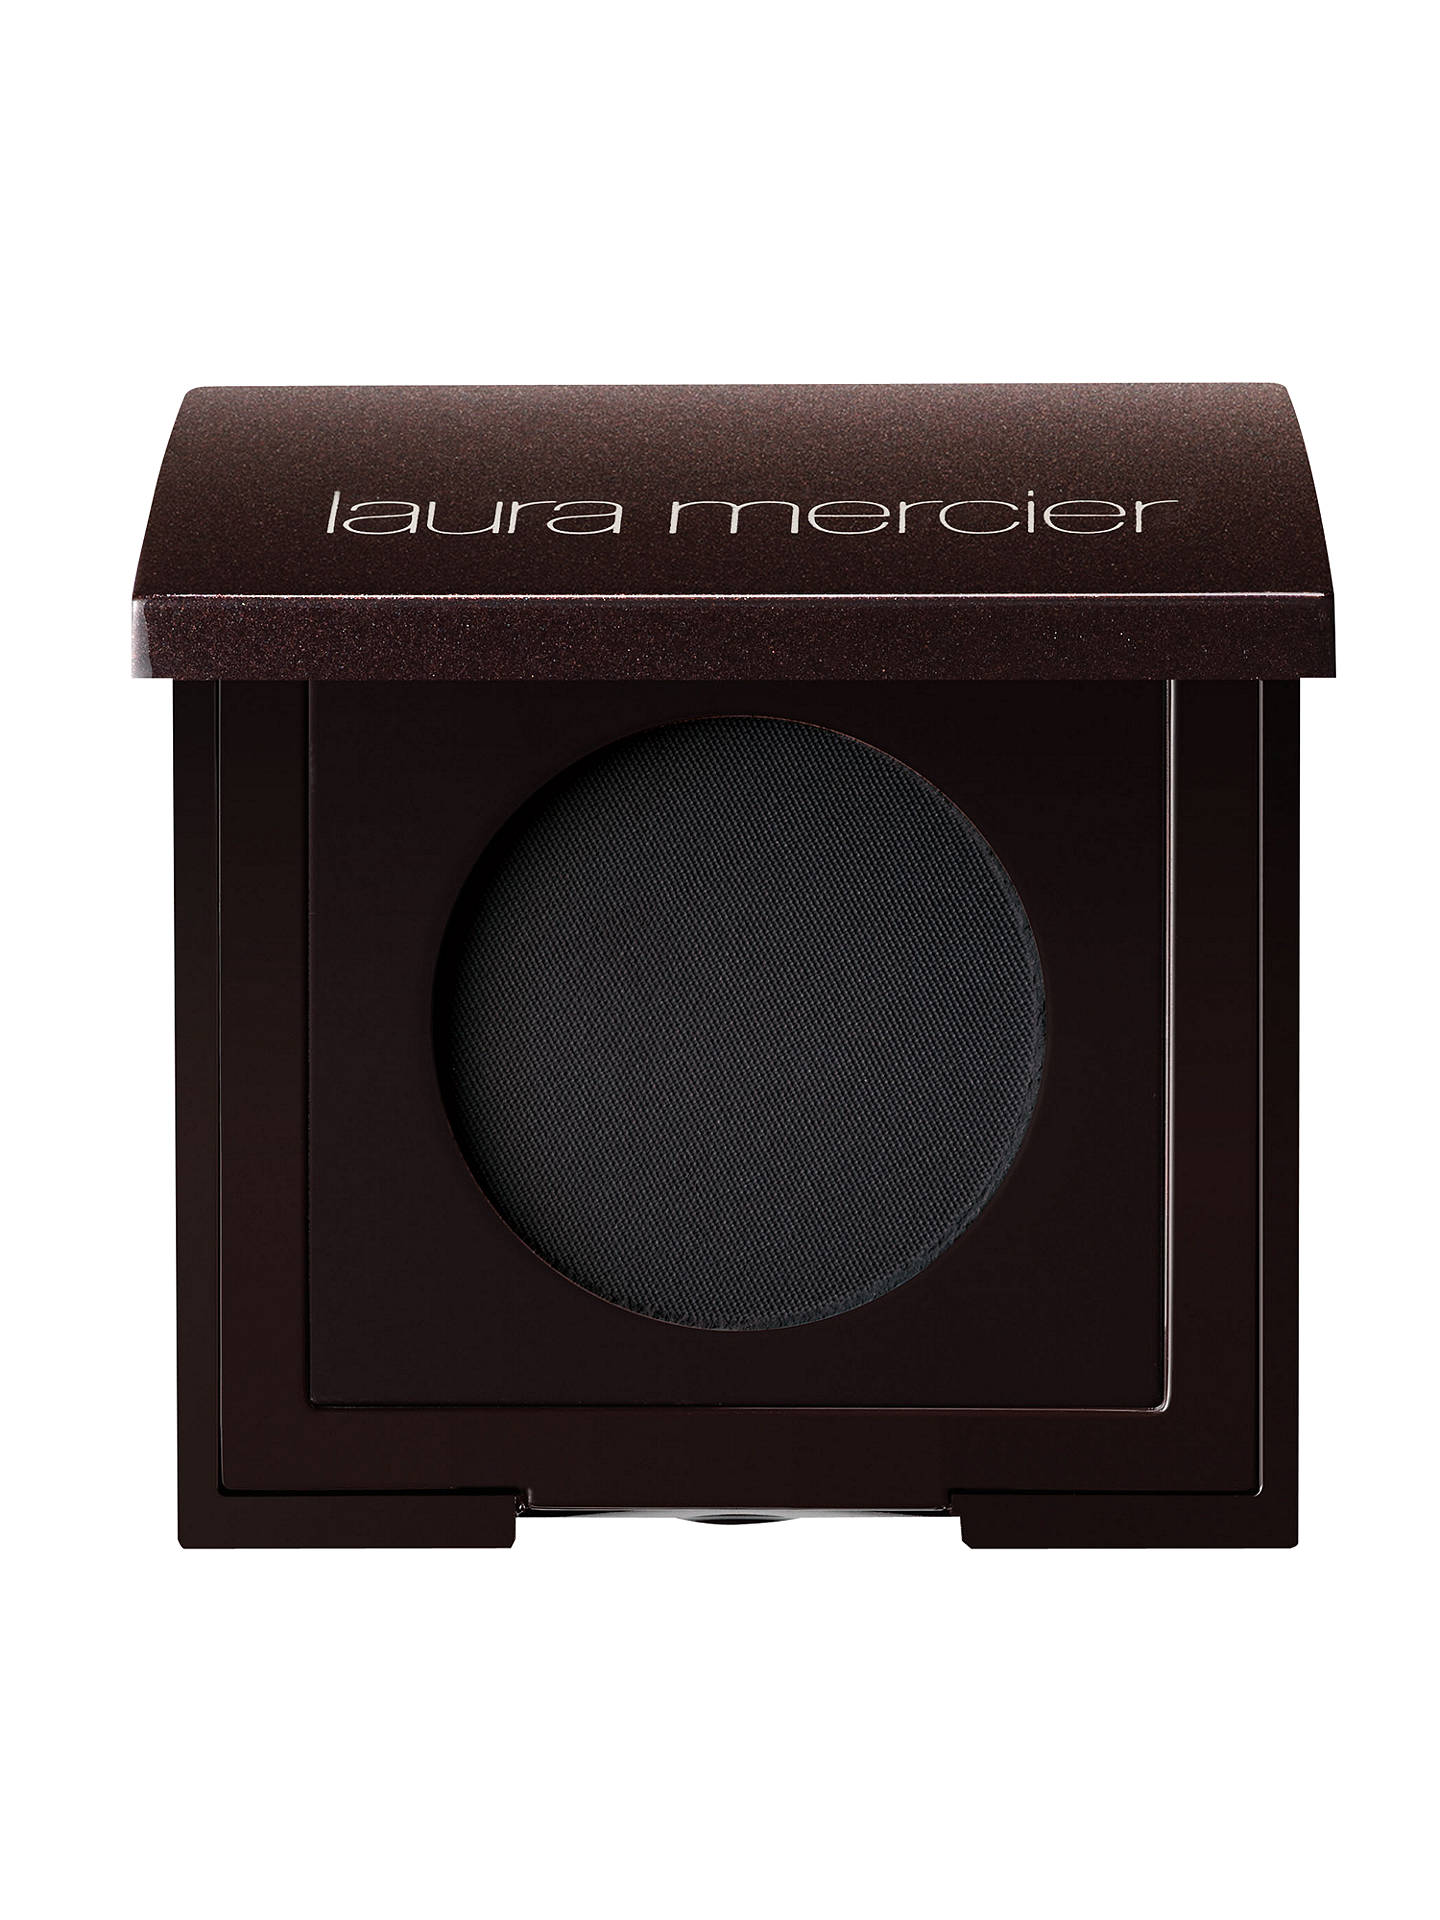 Buy Laura Mercier Tightline Cake Eye Liner, Black Ebony Online at johnlewis.com